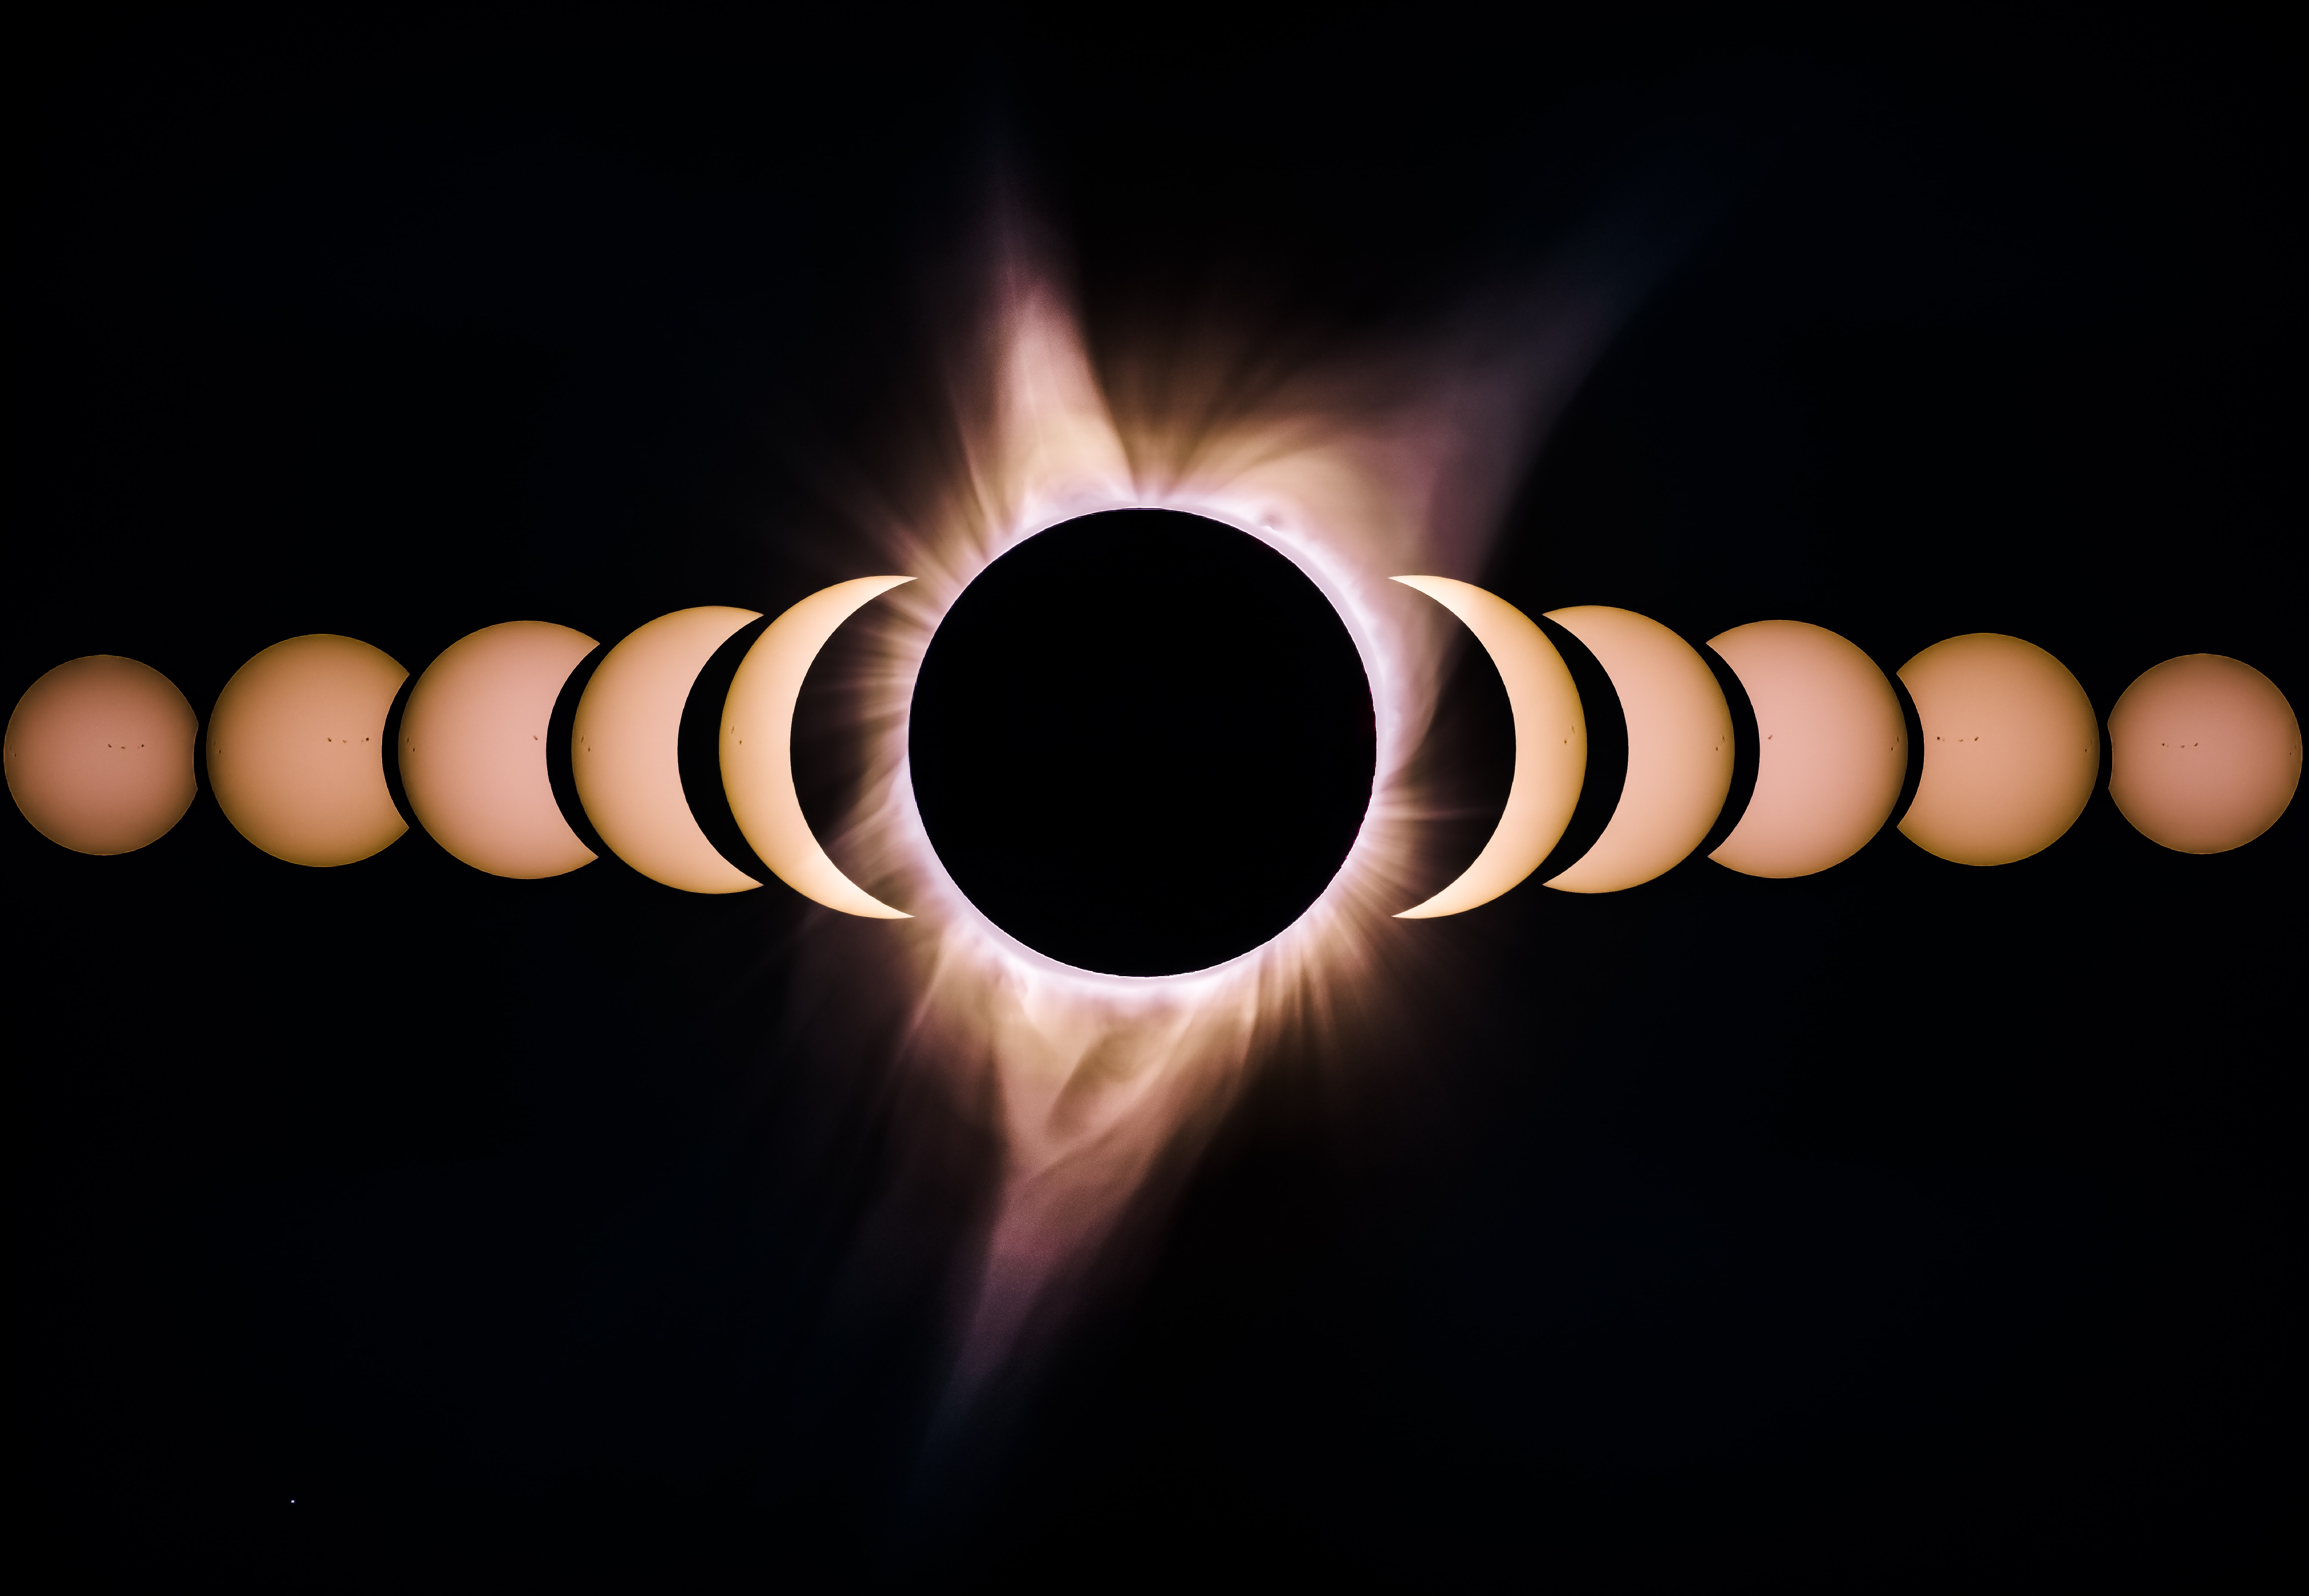 solar eclipse 3D wallpaper